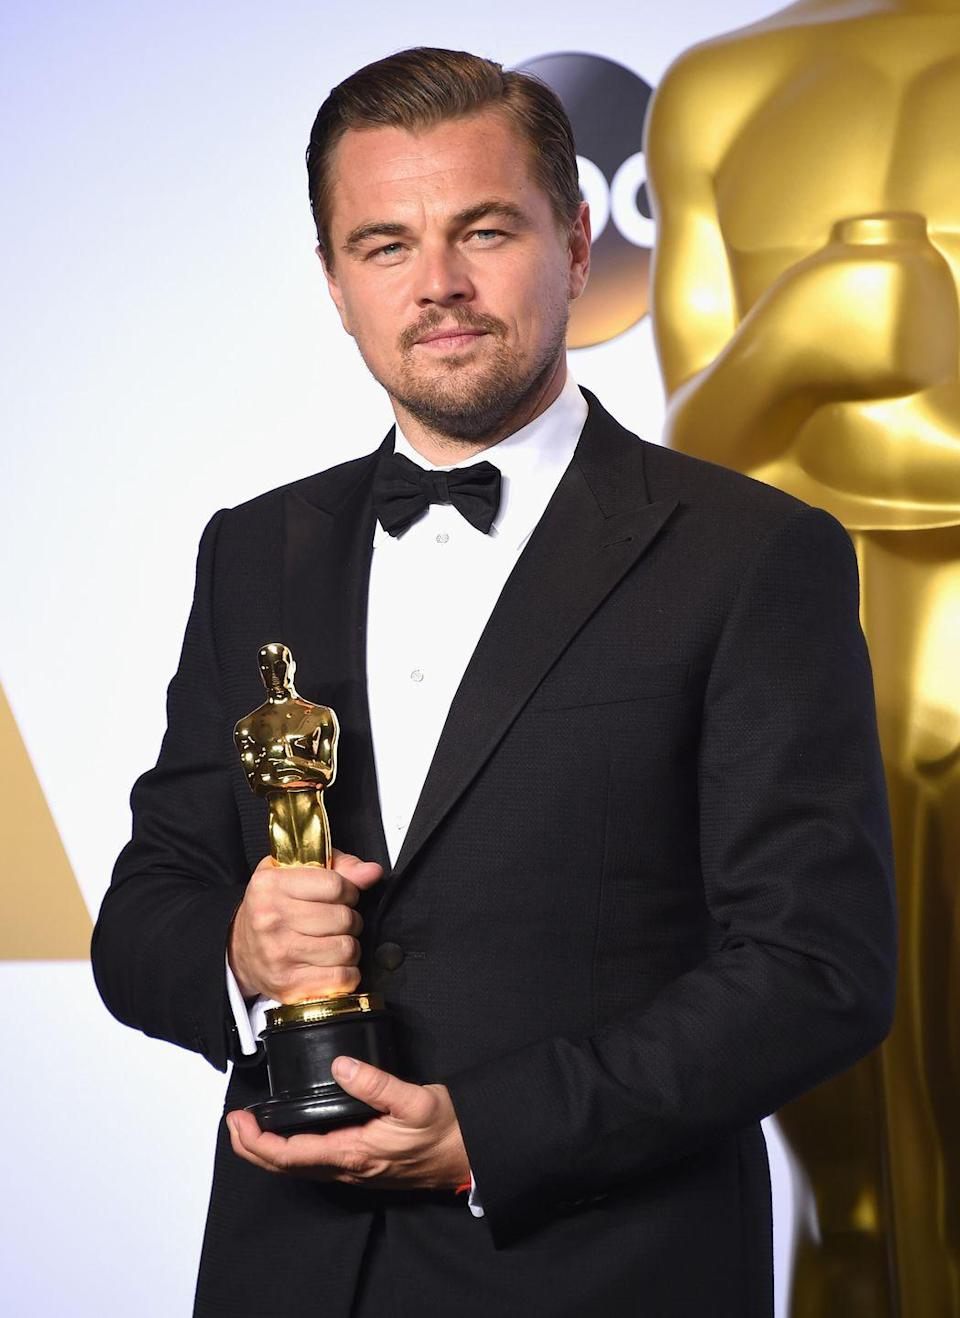 <p>Let's face it, Leonardo DiCaprio could have been named leading man most years, but 2016 is when he (finally) won an Oscar and order was restored to the universe. After a career with too many impressive performances to count, DiCaprio nabbed the statue for <em>The Revenant</em>.</p>